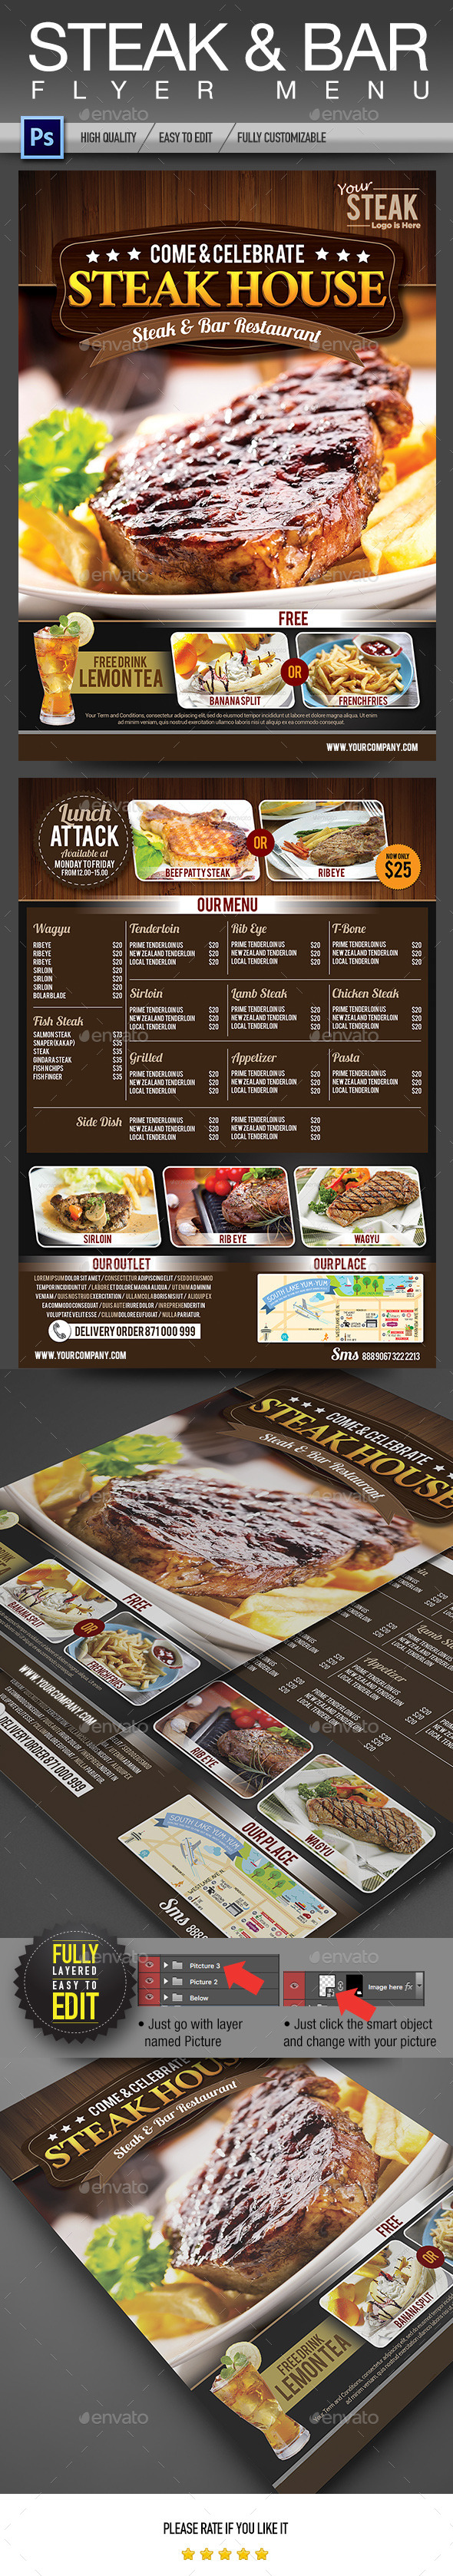 Steak & Bar Flyer Menu - Restaurant Flyers